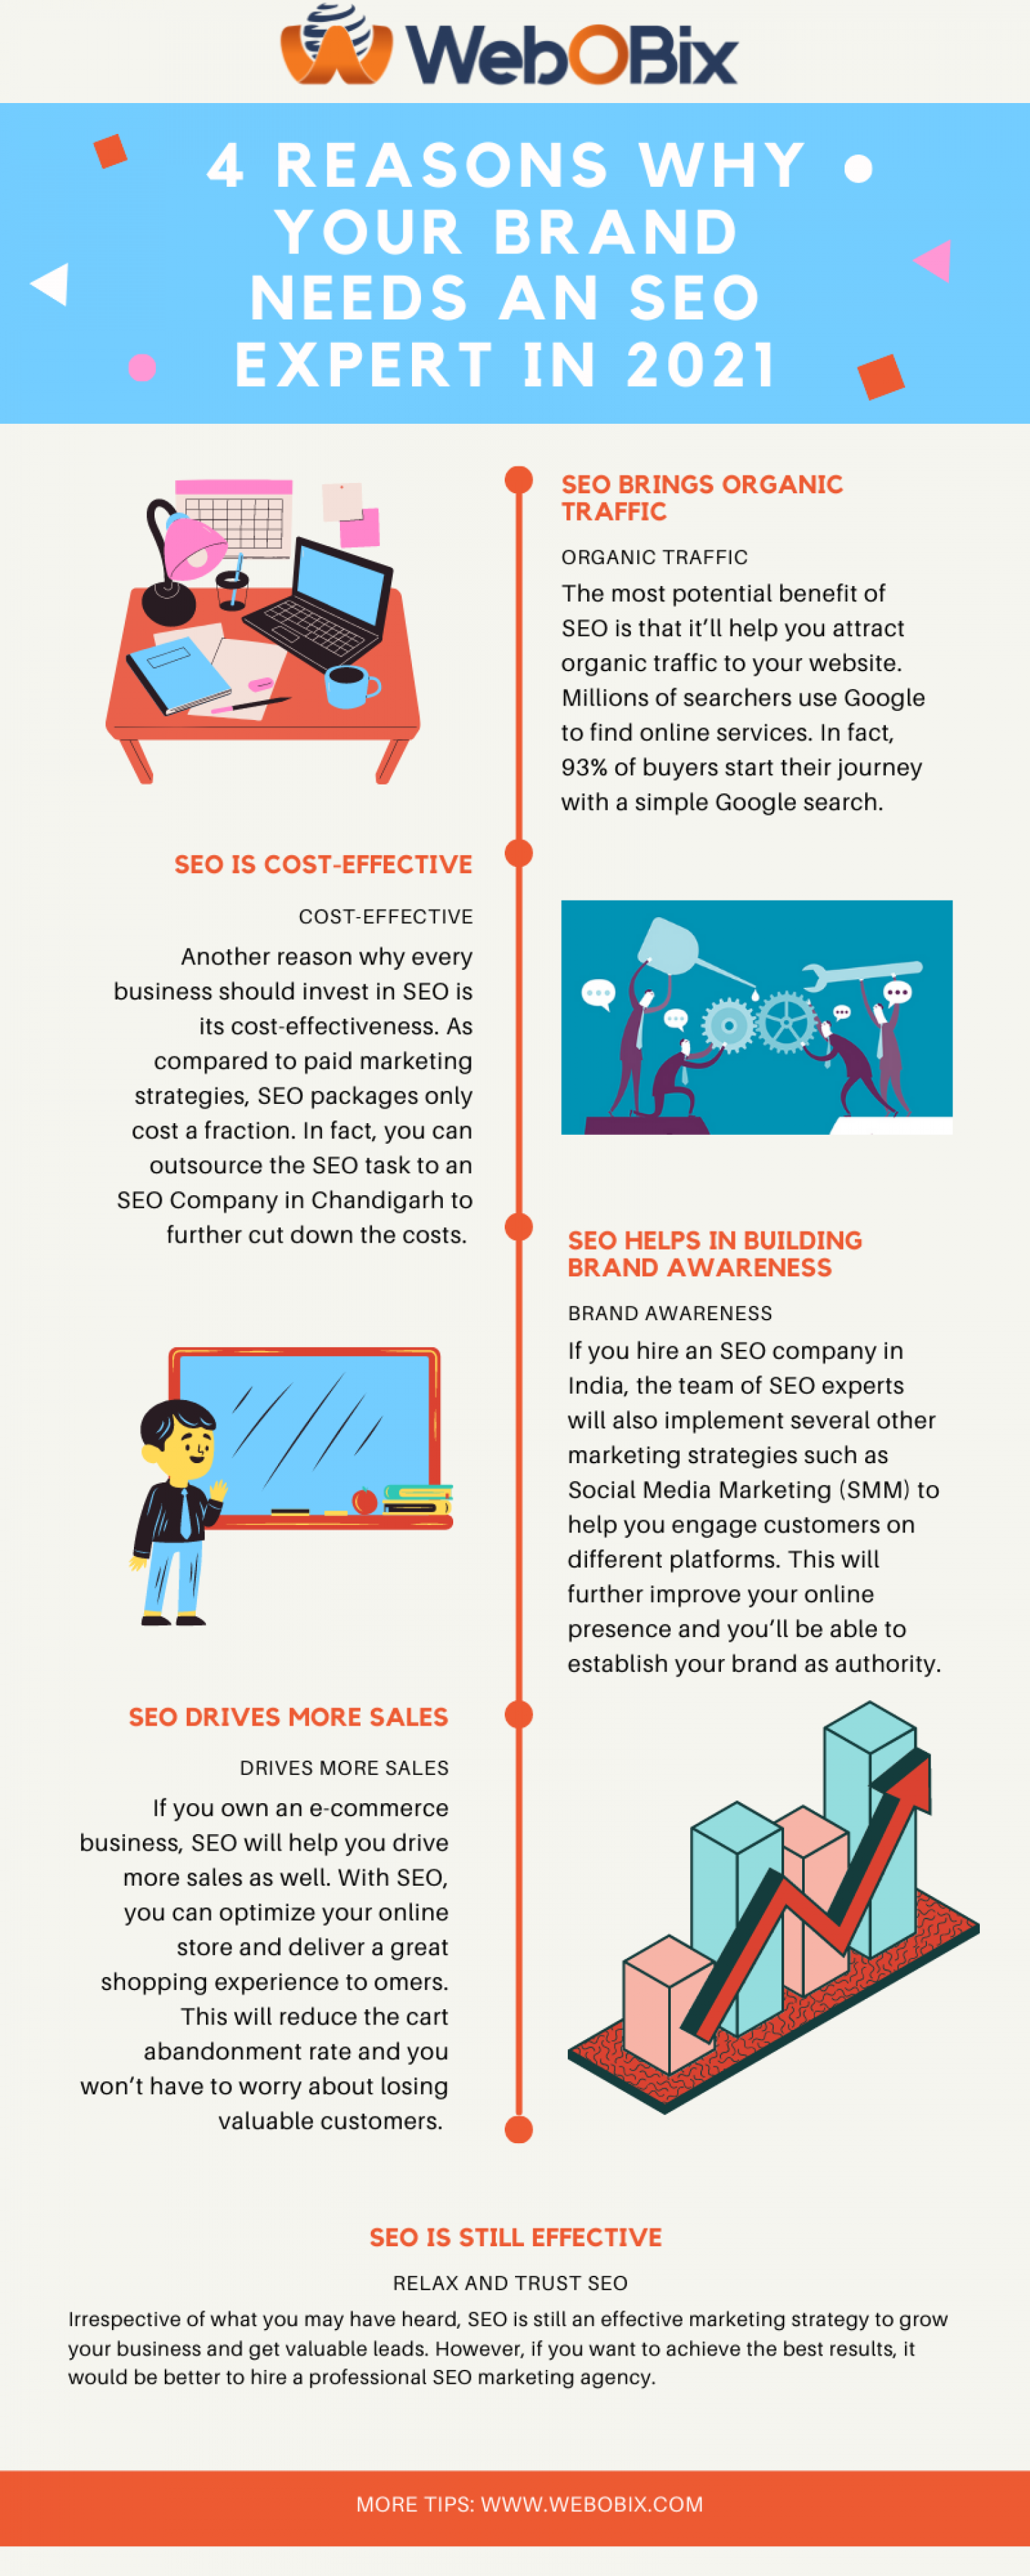 Reasons Why Your Brand Needs an SEO Expert in 2021 |  Local SEO Services | Digital Marketing Company Infographic